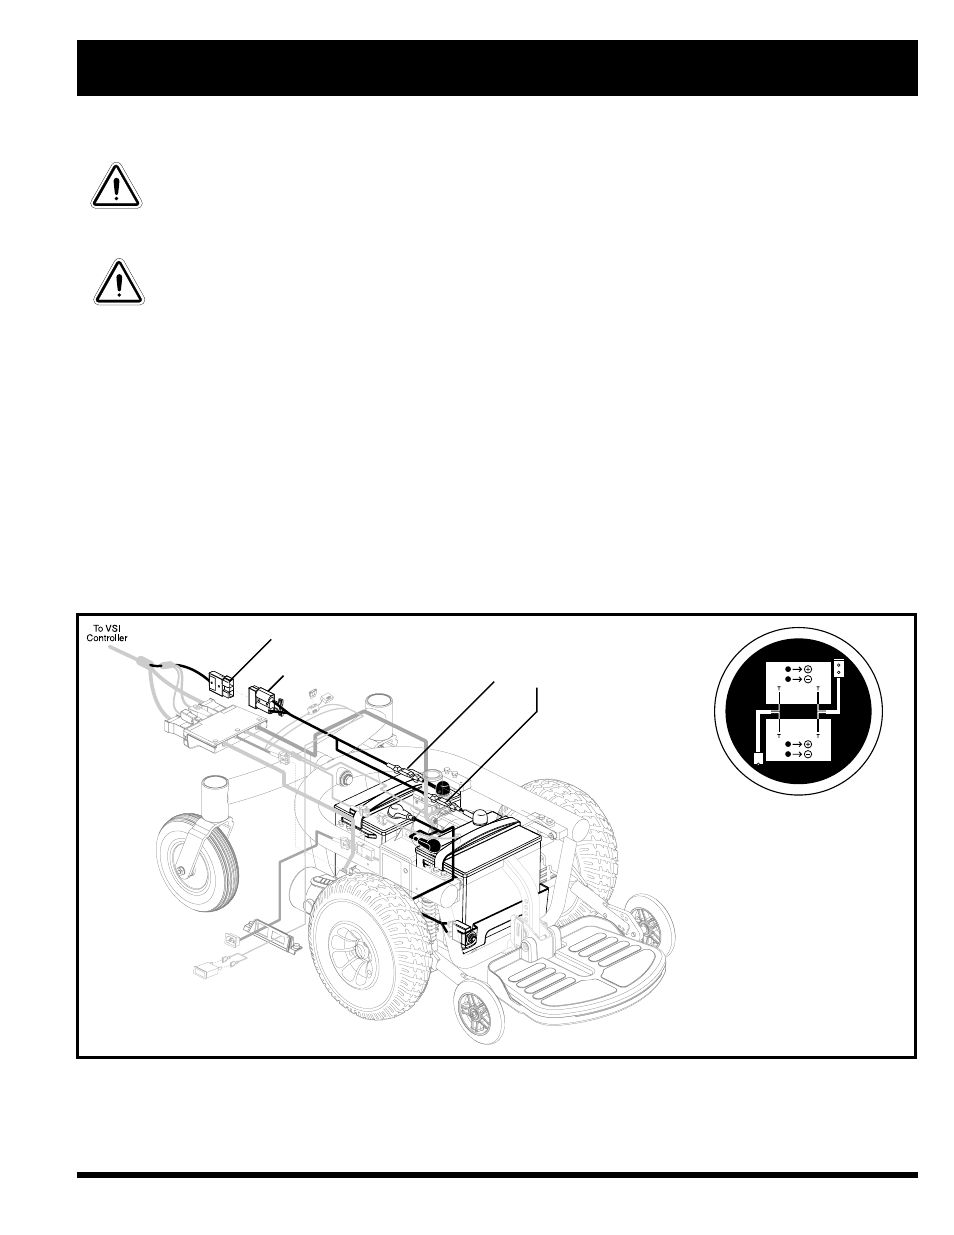 hight resolution of pride mobility jazzy 1103 ultra user manual page 51 55